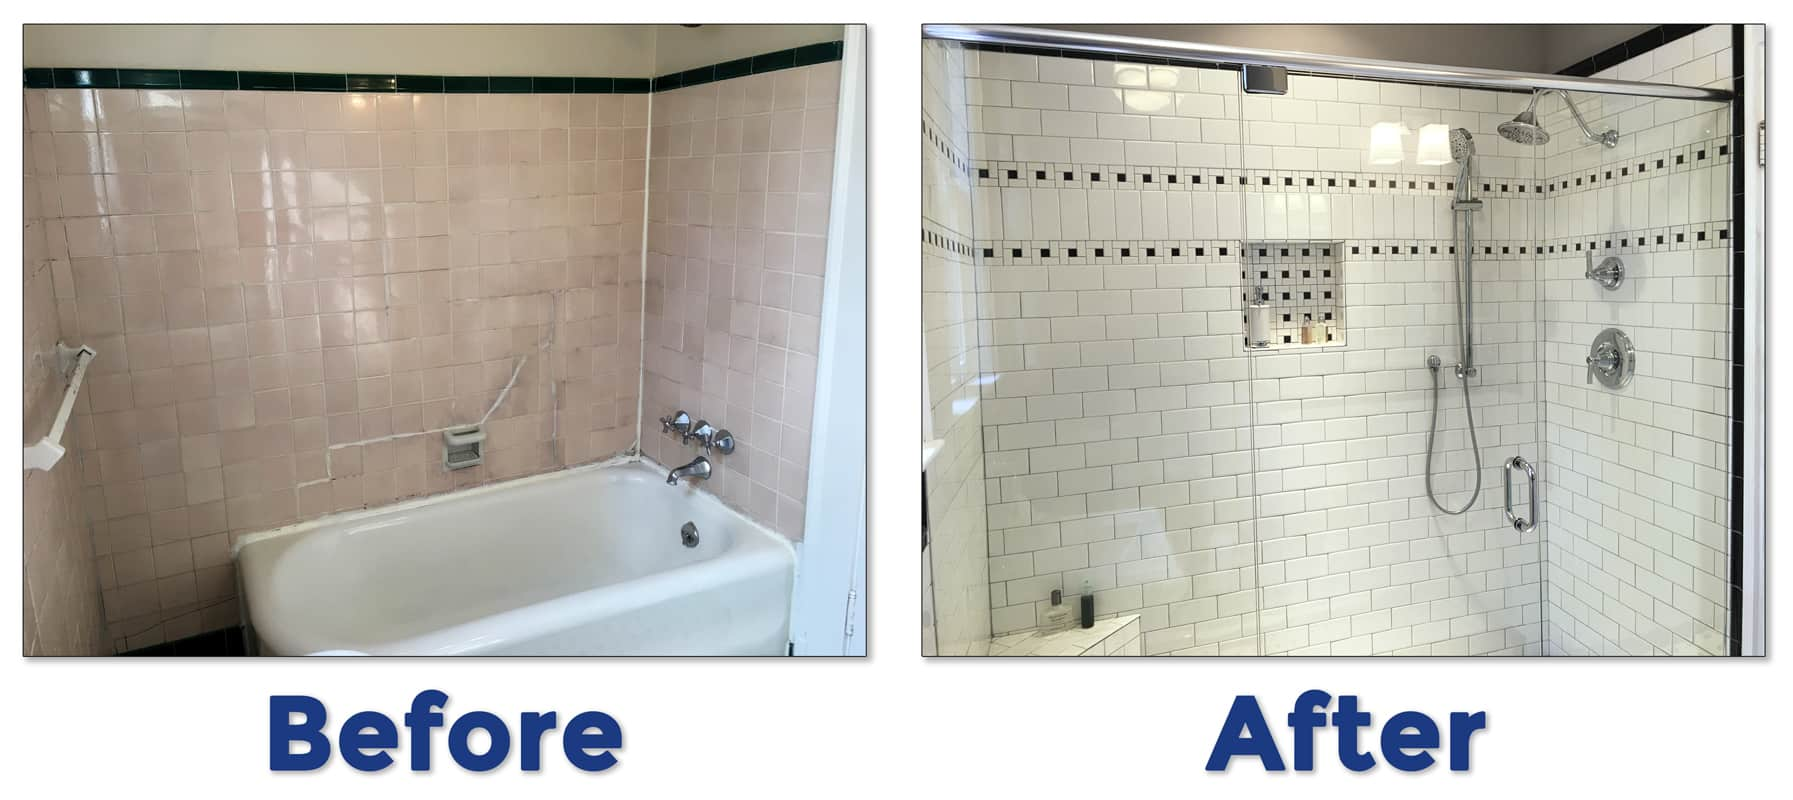 Bathroom Remodeler Atlanta Ga Bathroom Remodeling Atlanta Remodeler - Bathroom remodel atlanta